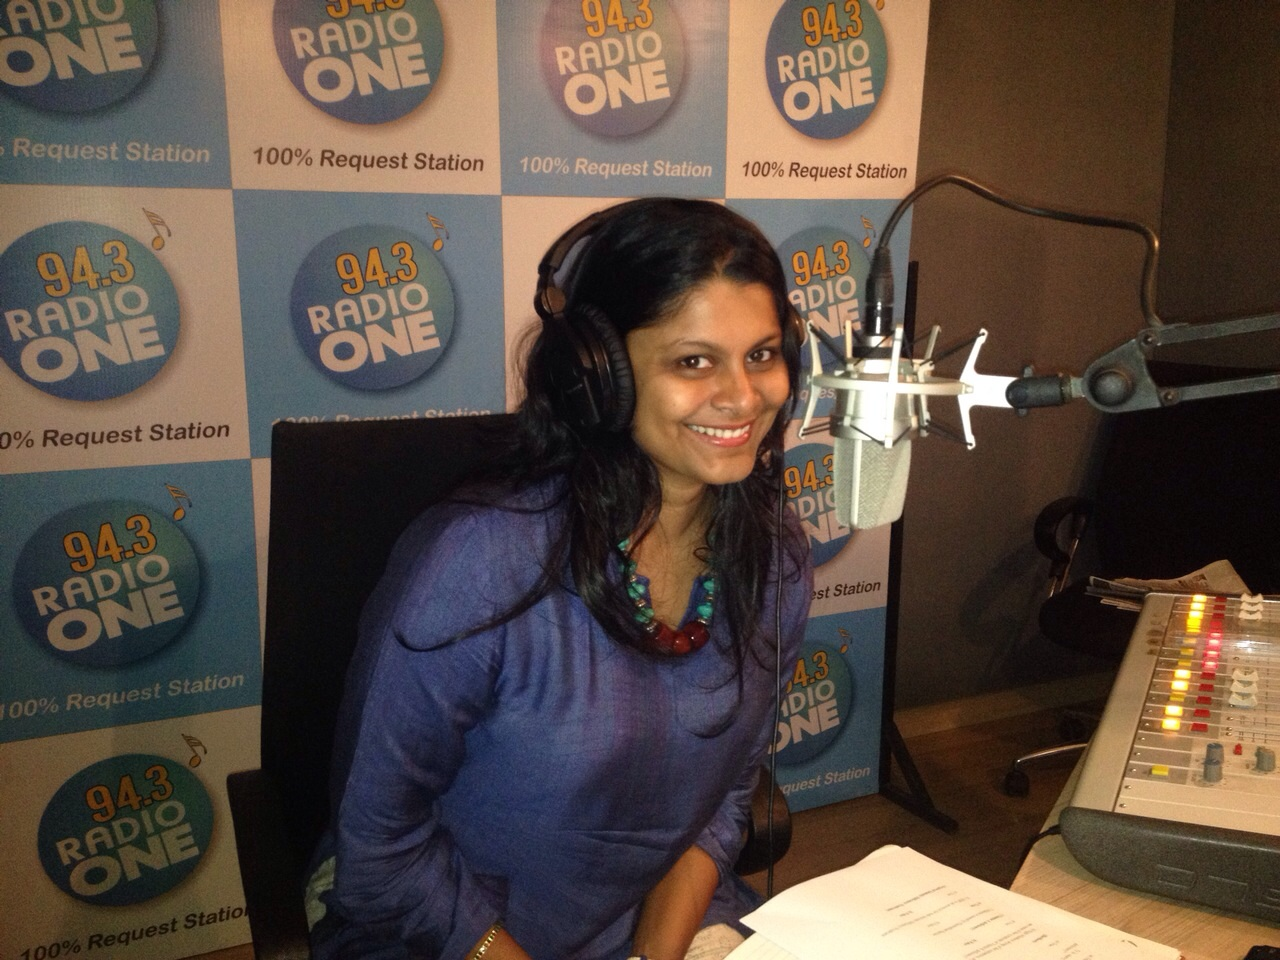 Radio One 94.3 with Pavitra Sri Prakash